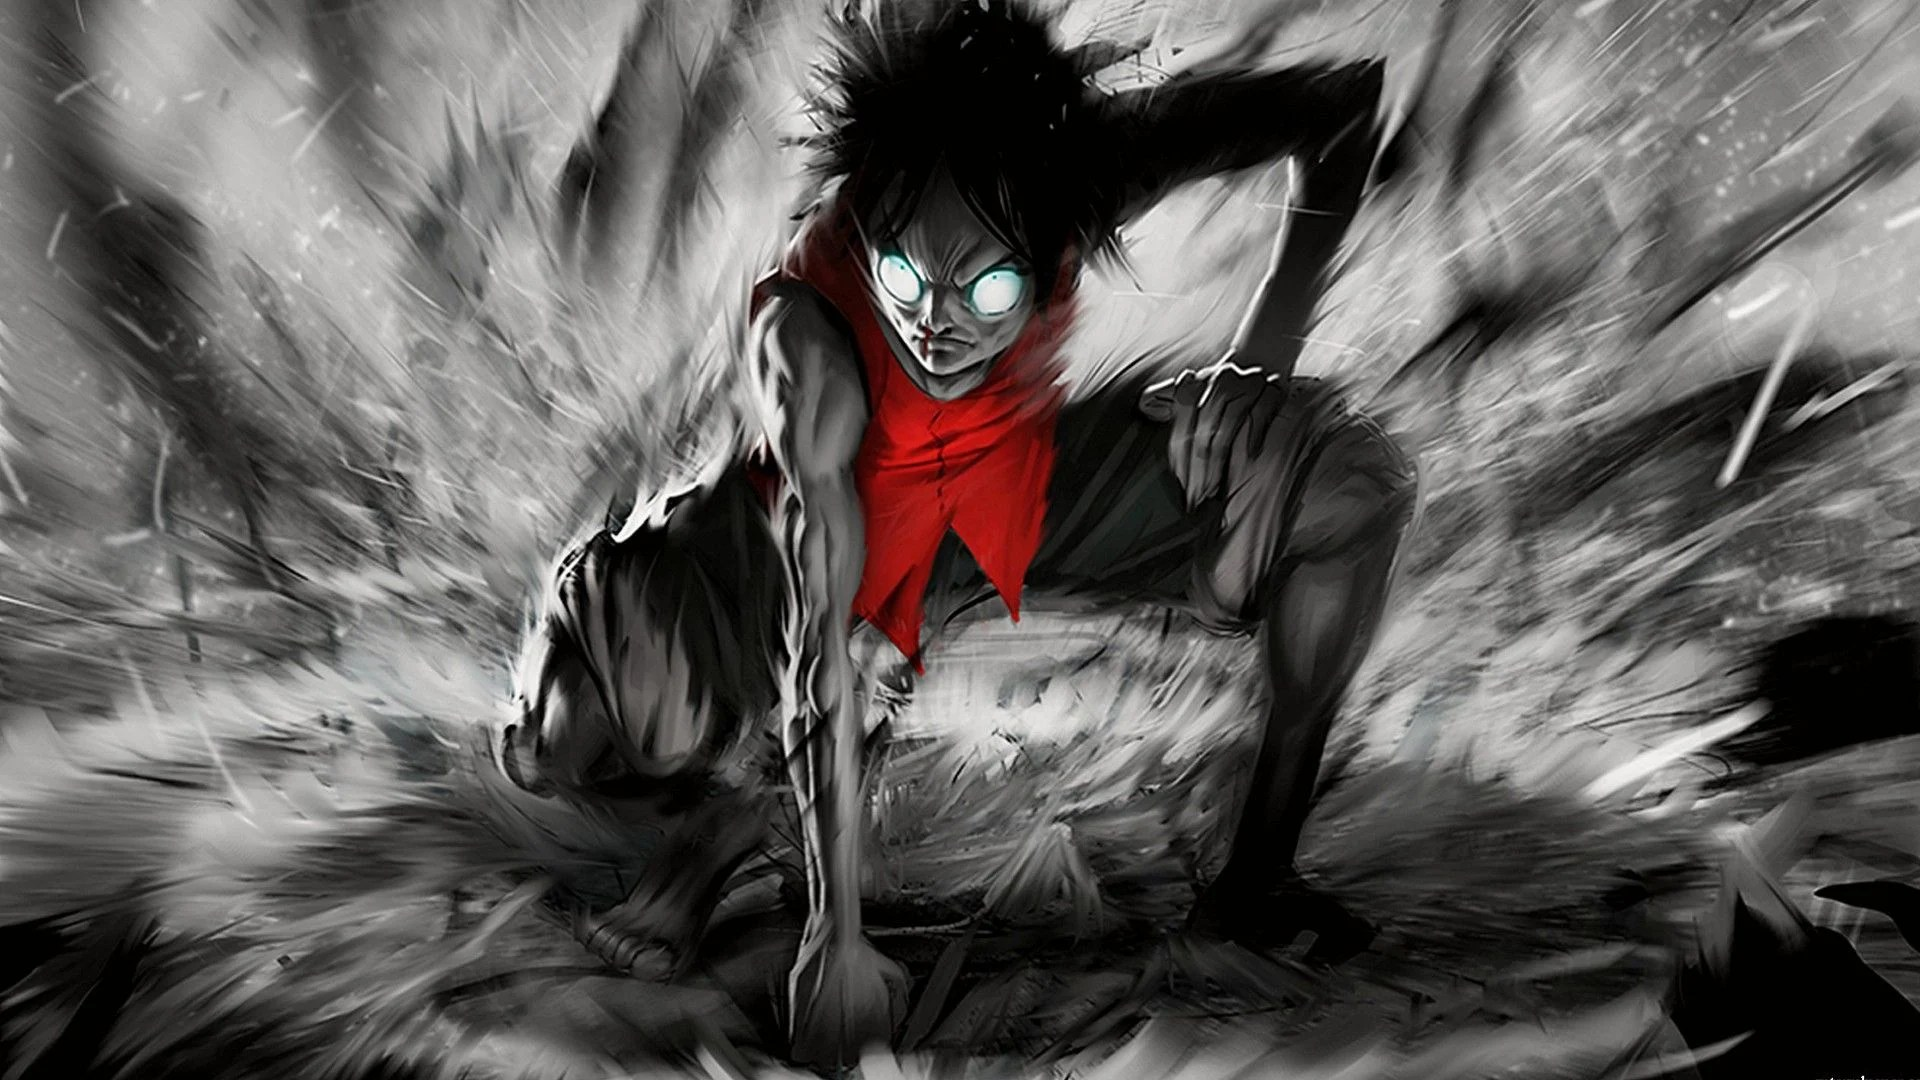 Scary Anime 4k Wallpapers Top Free Scary Anime 4k Backgrounds Wallpaperaccess